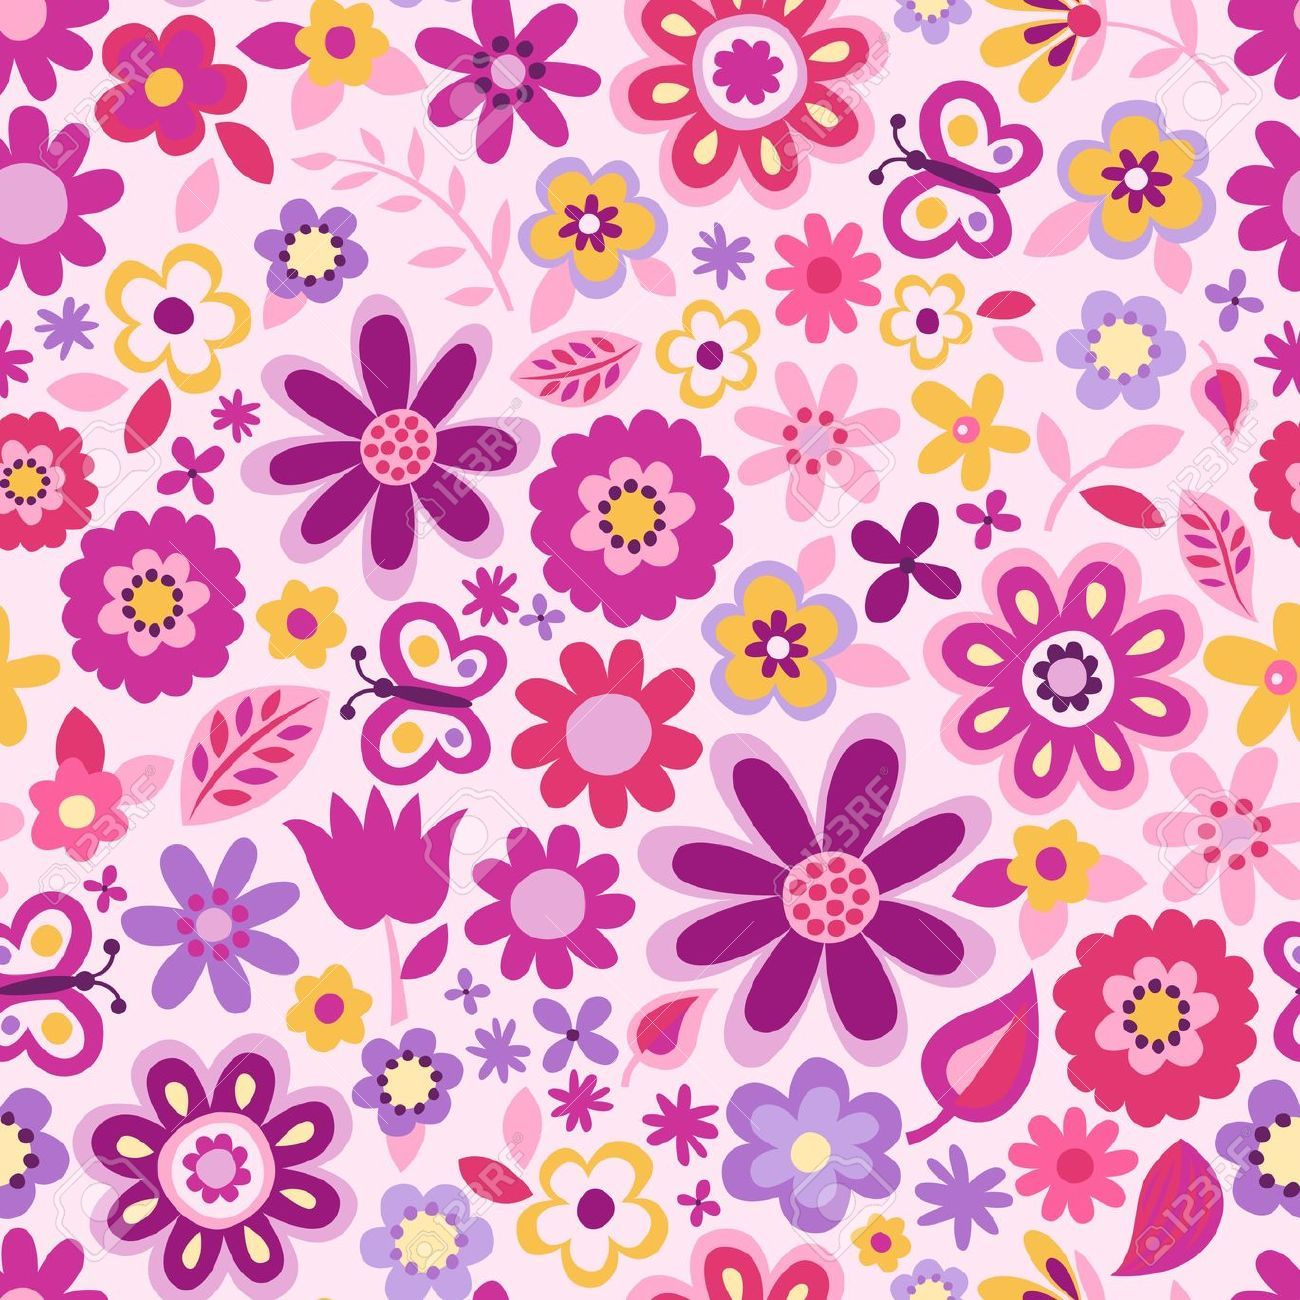 undefined Cute Pattern Wallpaper (35 Wallpapers ...